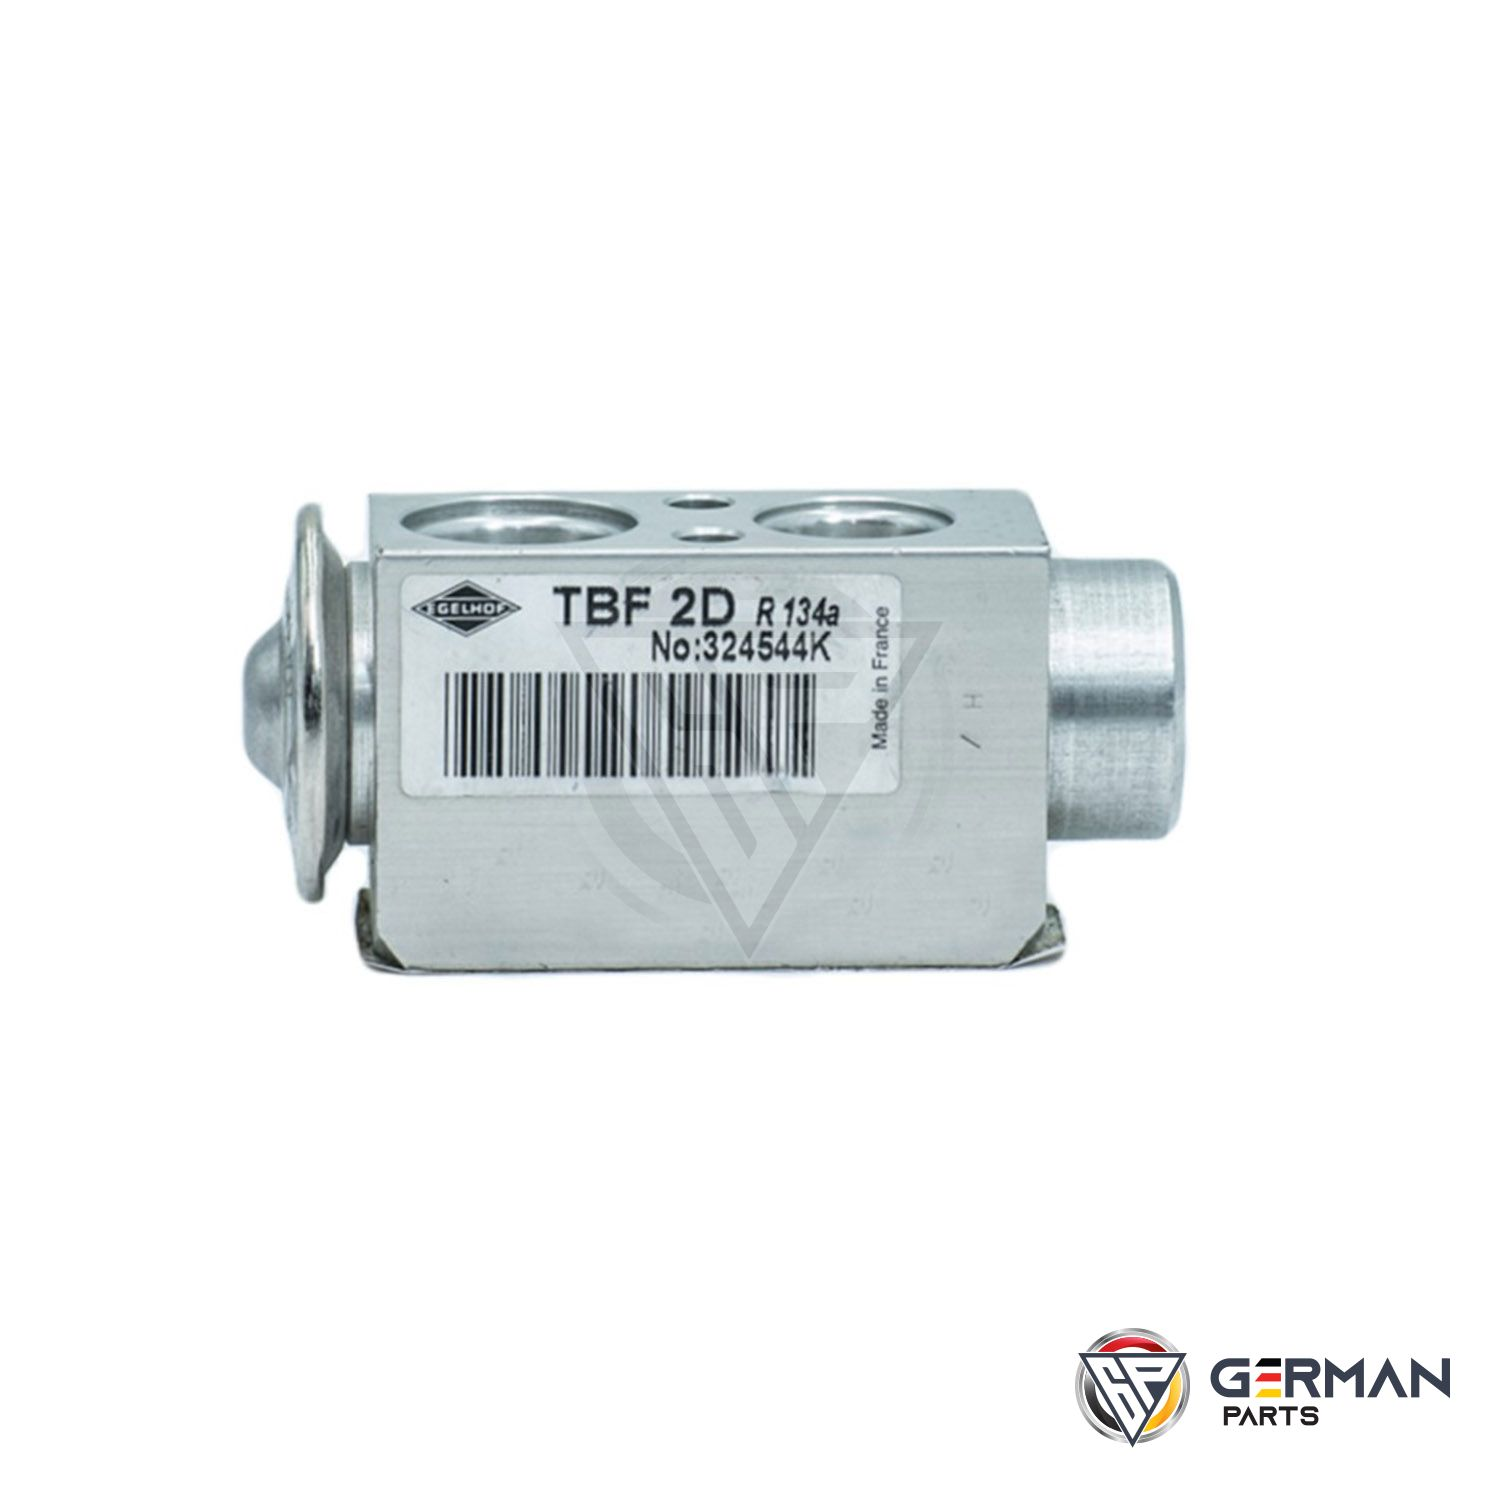 Buy Egelhof Expansion Valve 64116981484 - German Parts